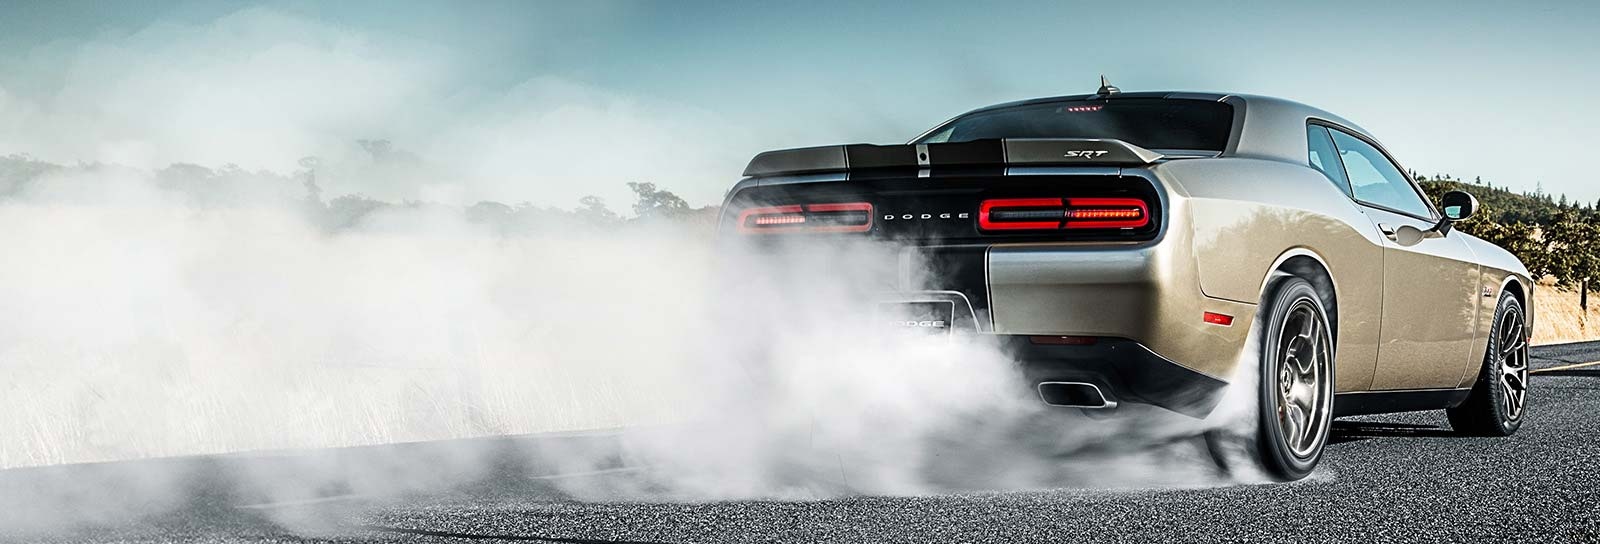 2016-dodge-challenger-now-car